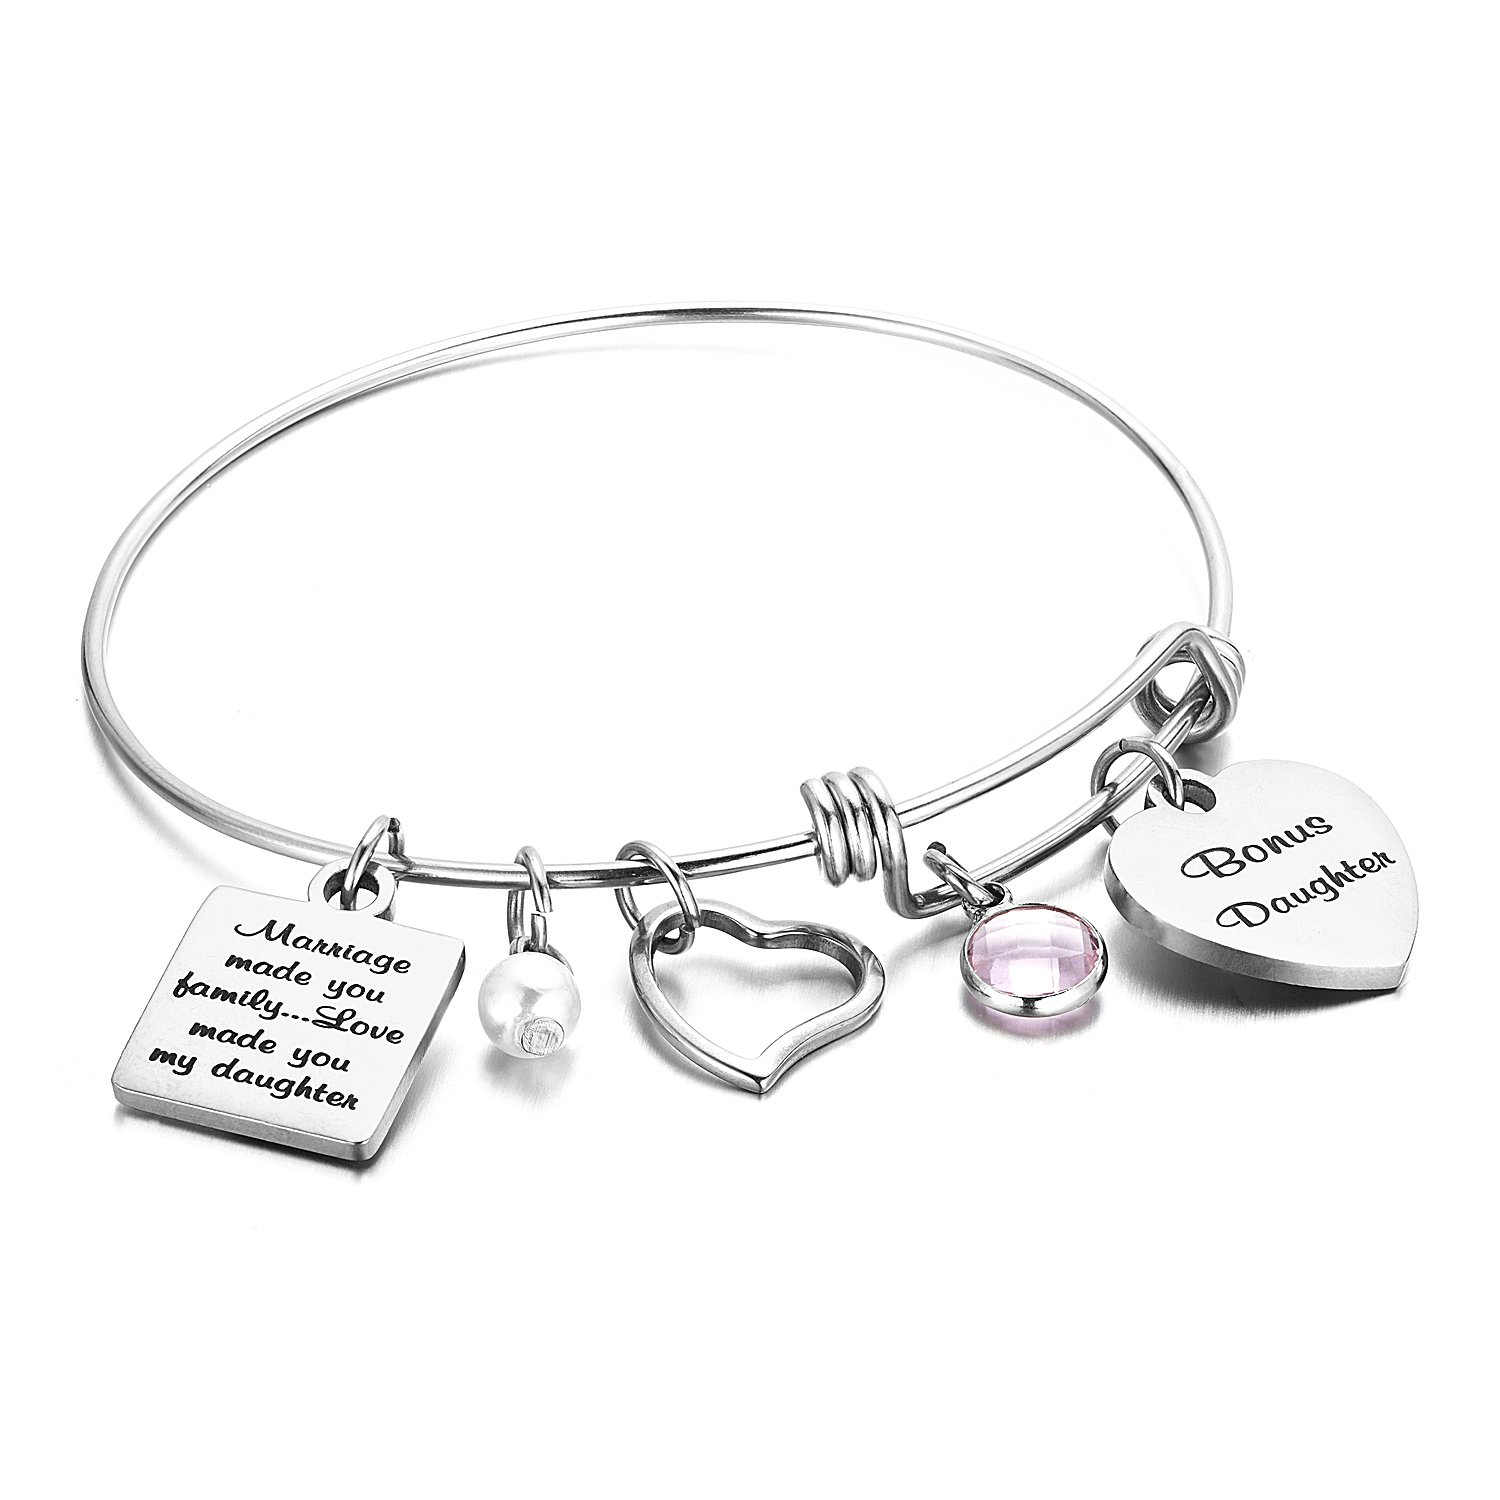 Step Daughter Bracelet, Daughter in Law Gifts Marriage made you Family Love made you My Daughter